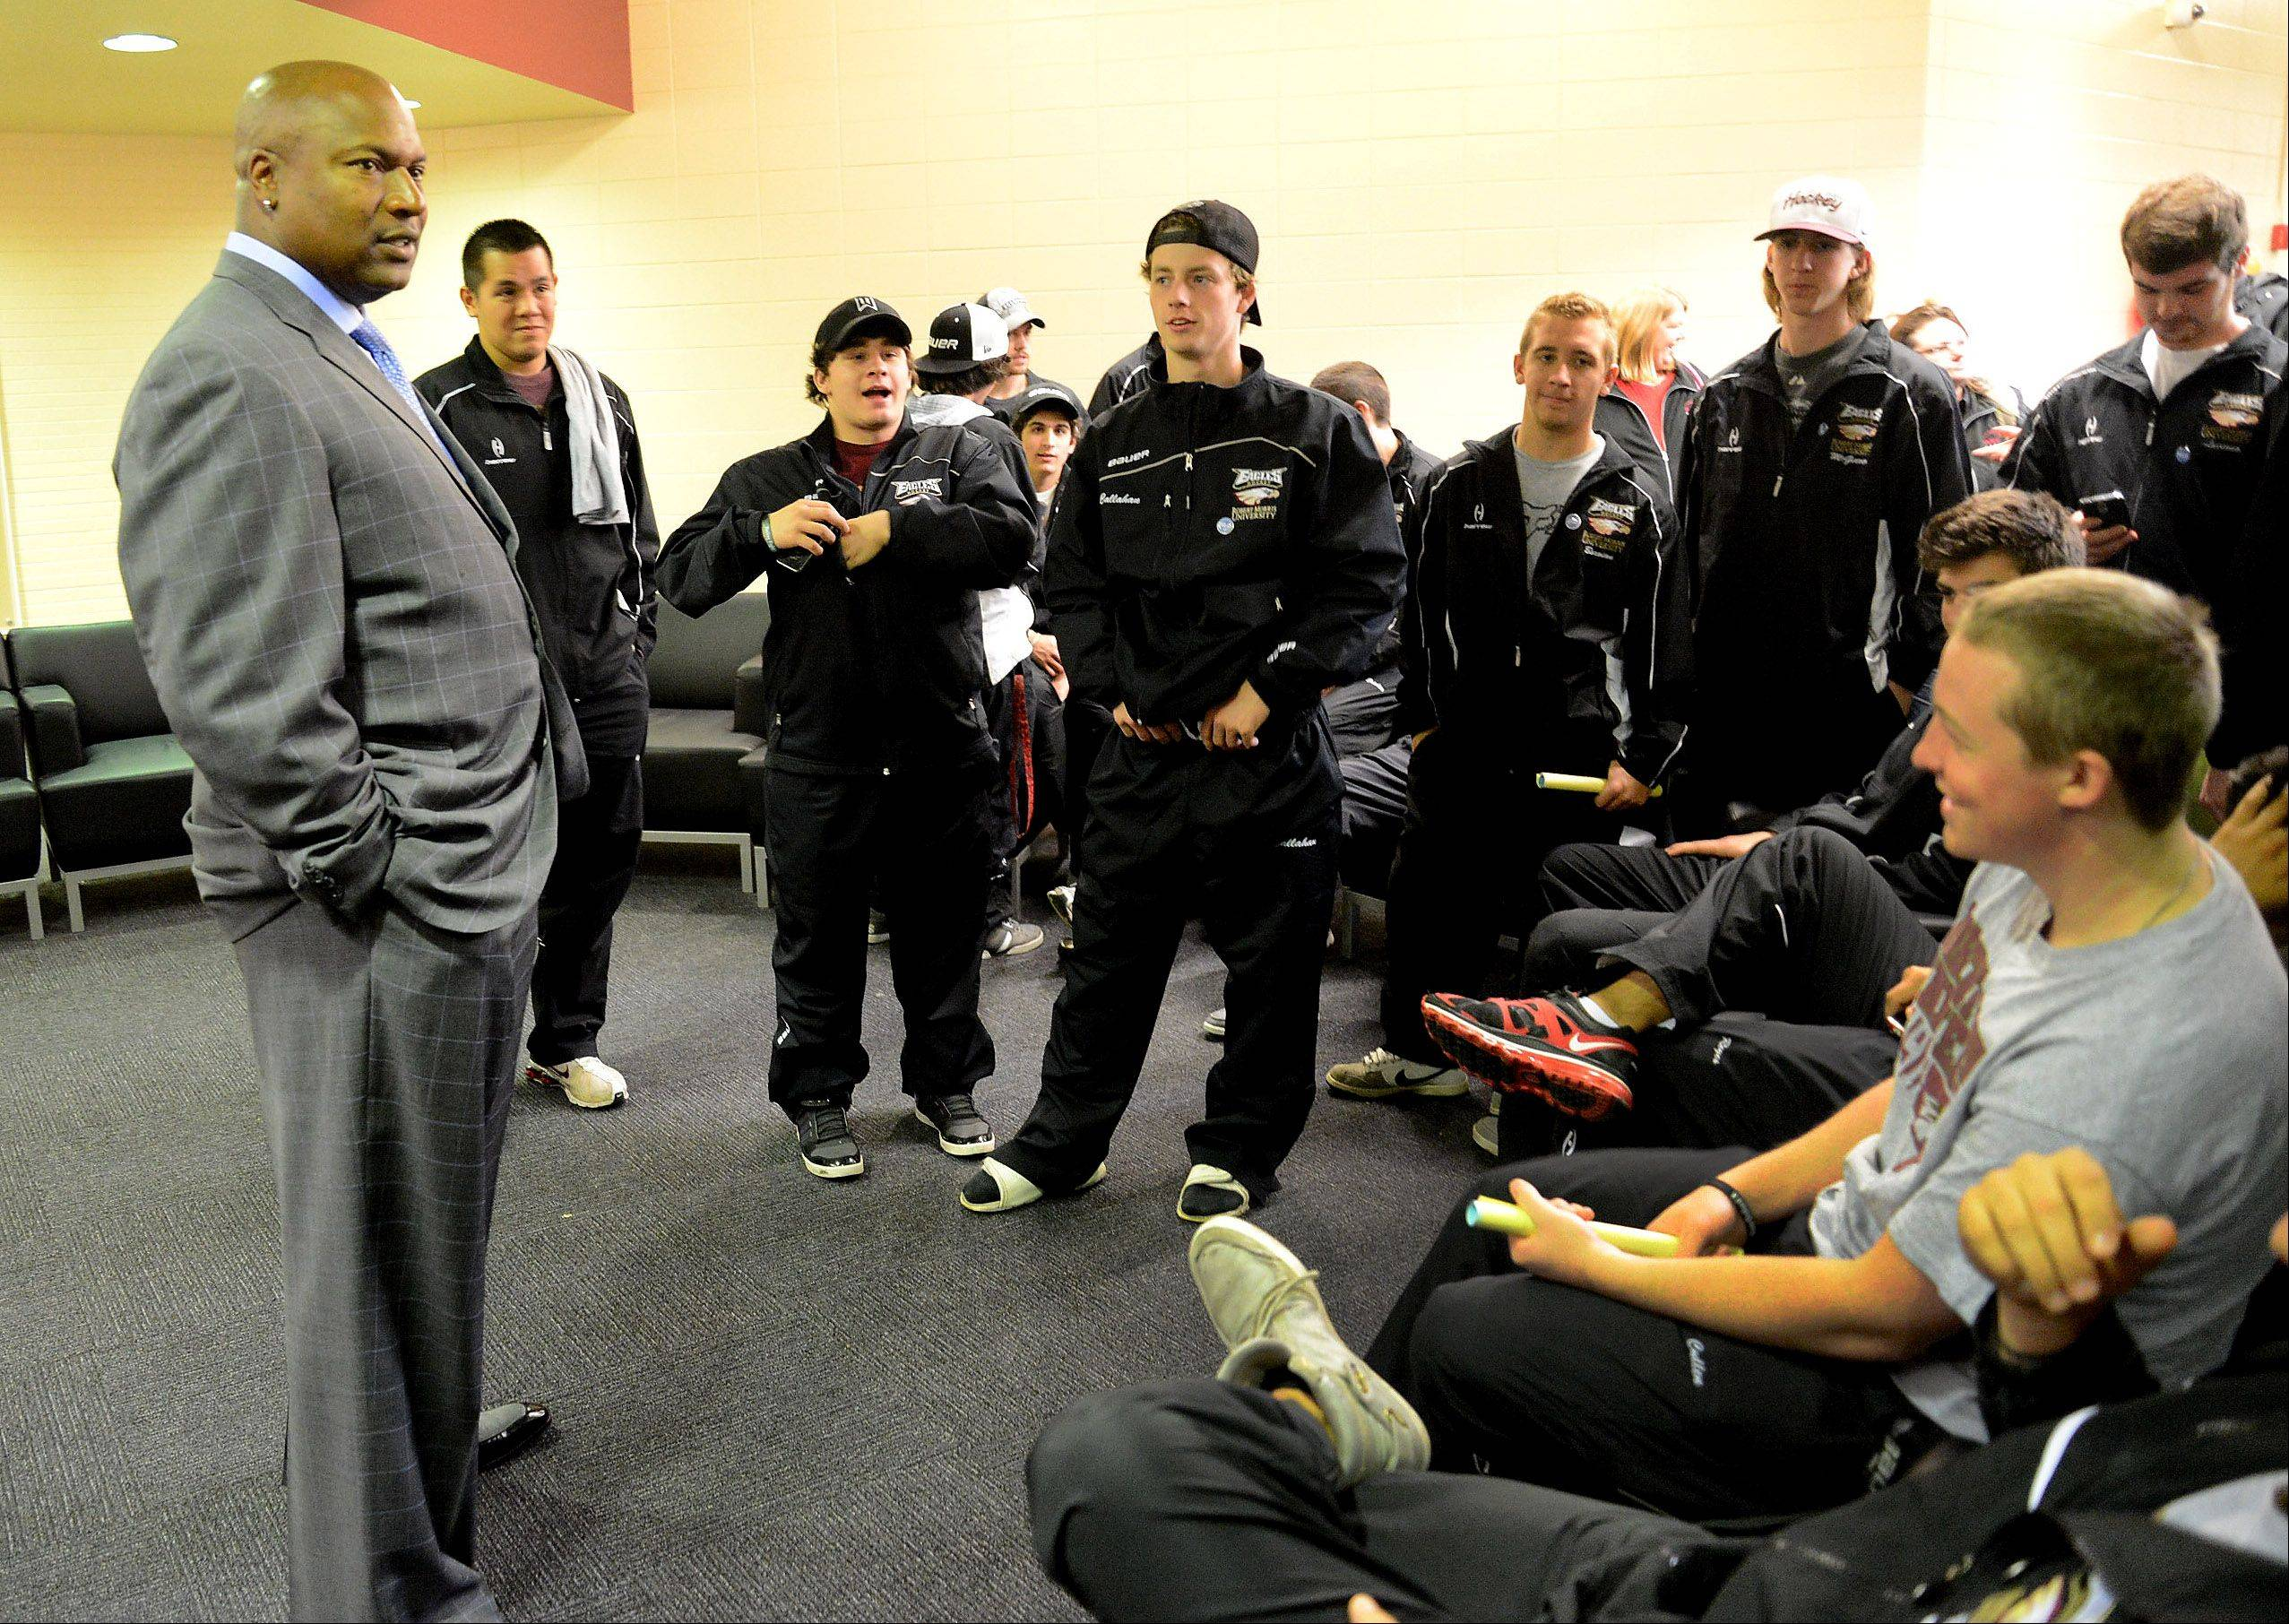 Football and baseball legend Bo Jackson talks to members of the Robert Morris University football team on Friday in Arlington Heights.